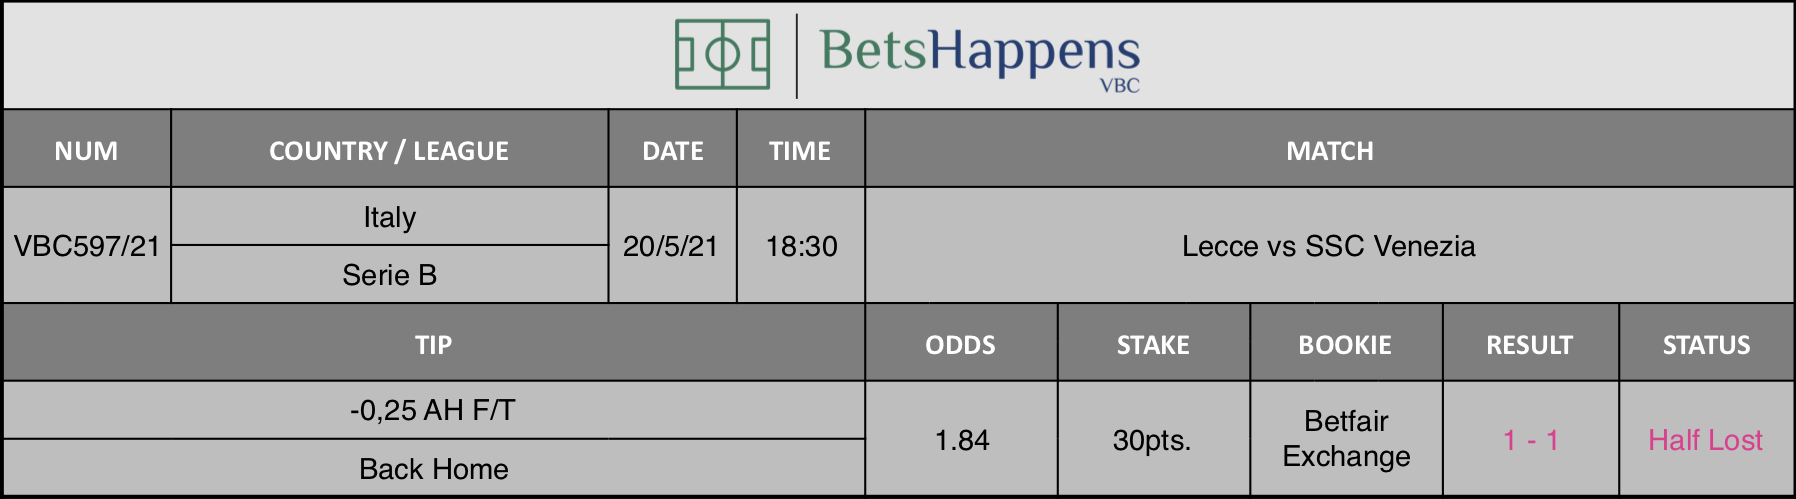 Results of our tip for the Lecce vs SSC Venezia match where -0,25 AH F/T Back Home is recommended.